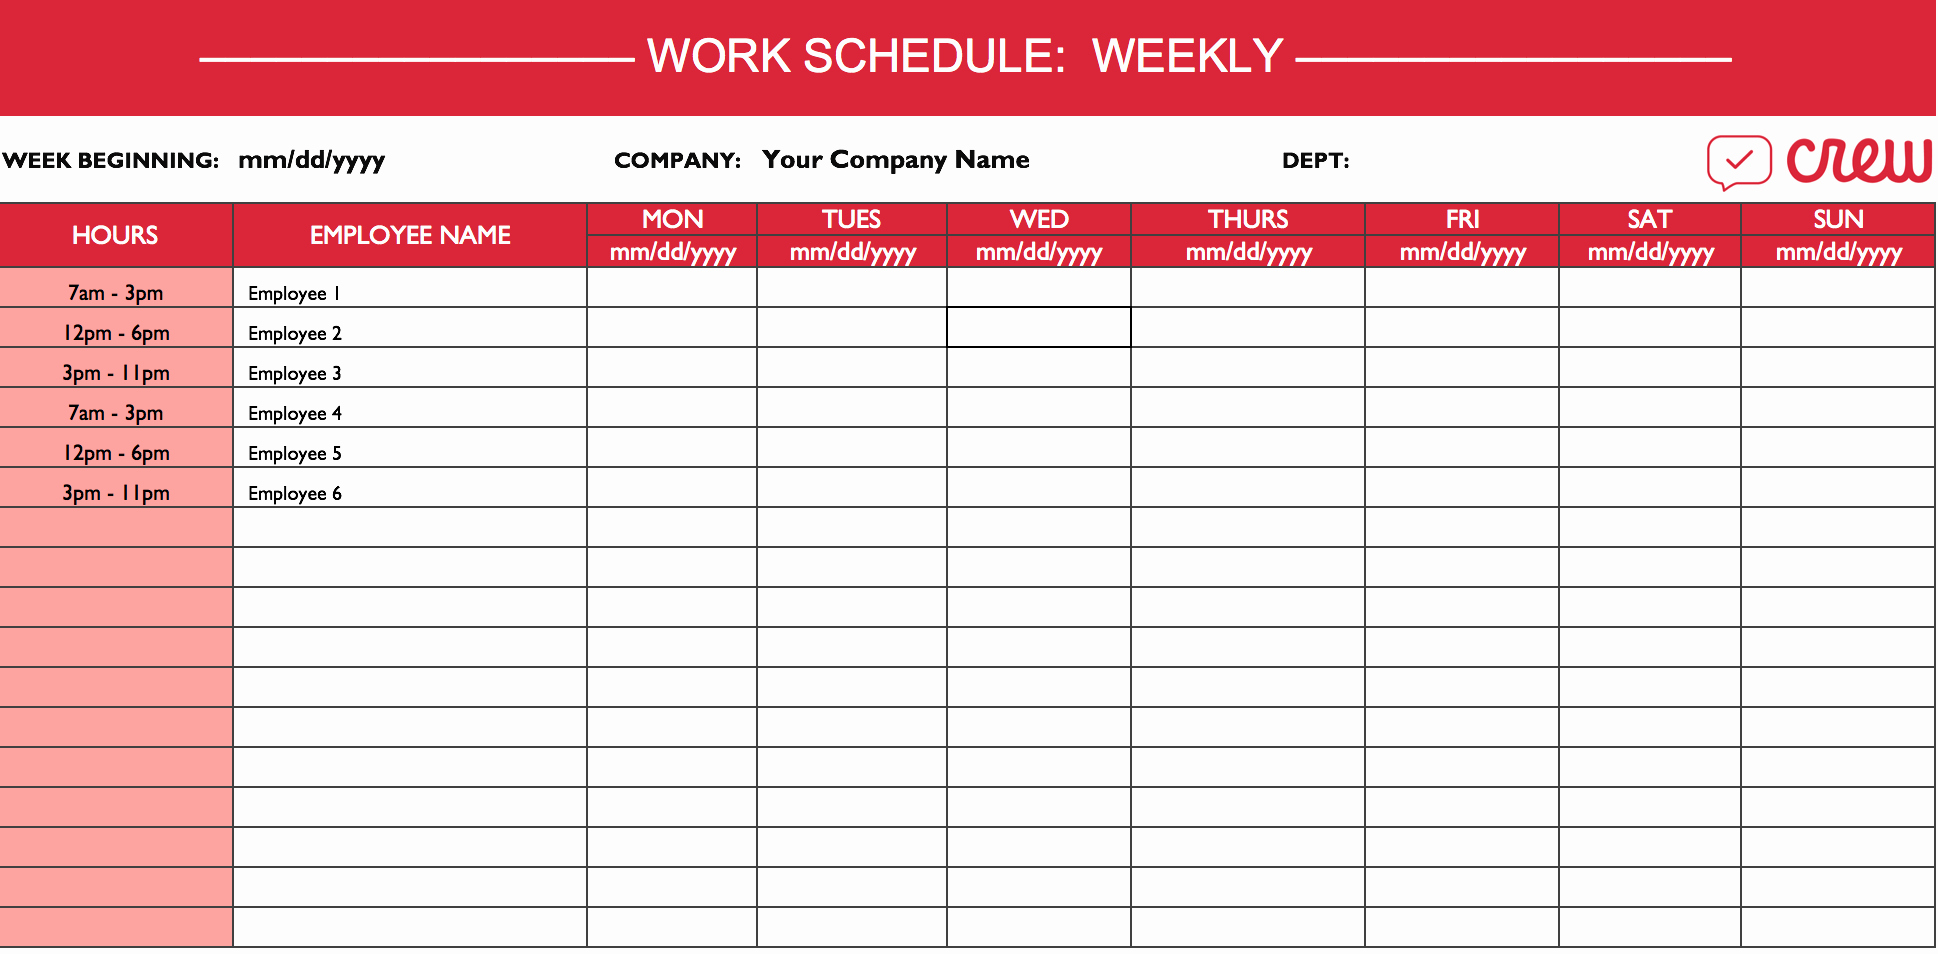 Sample Work Schedule Template Elegant Weekly Work Schedule Template I Crew